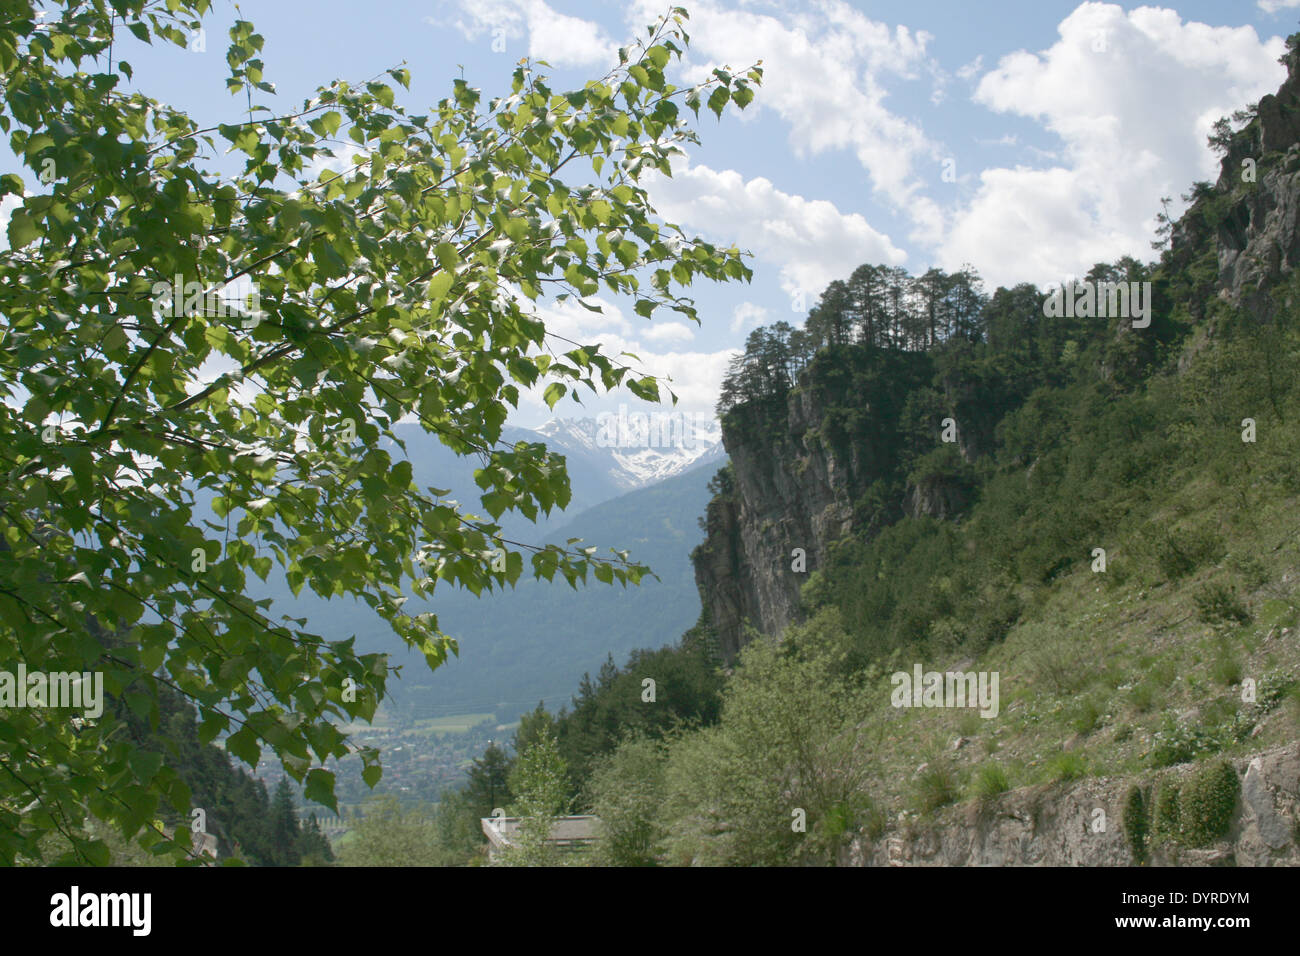 Look about the valley of the Inn, In the foreground a birch branch - Stock Image